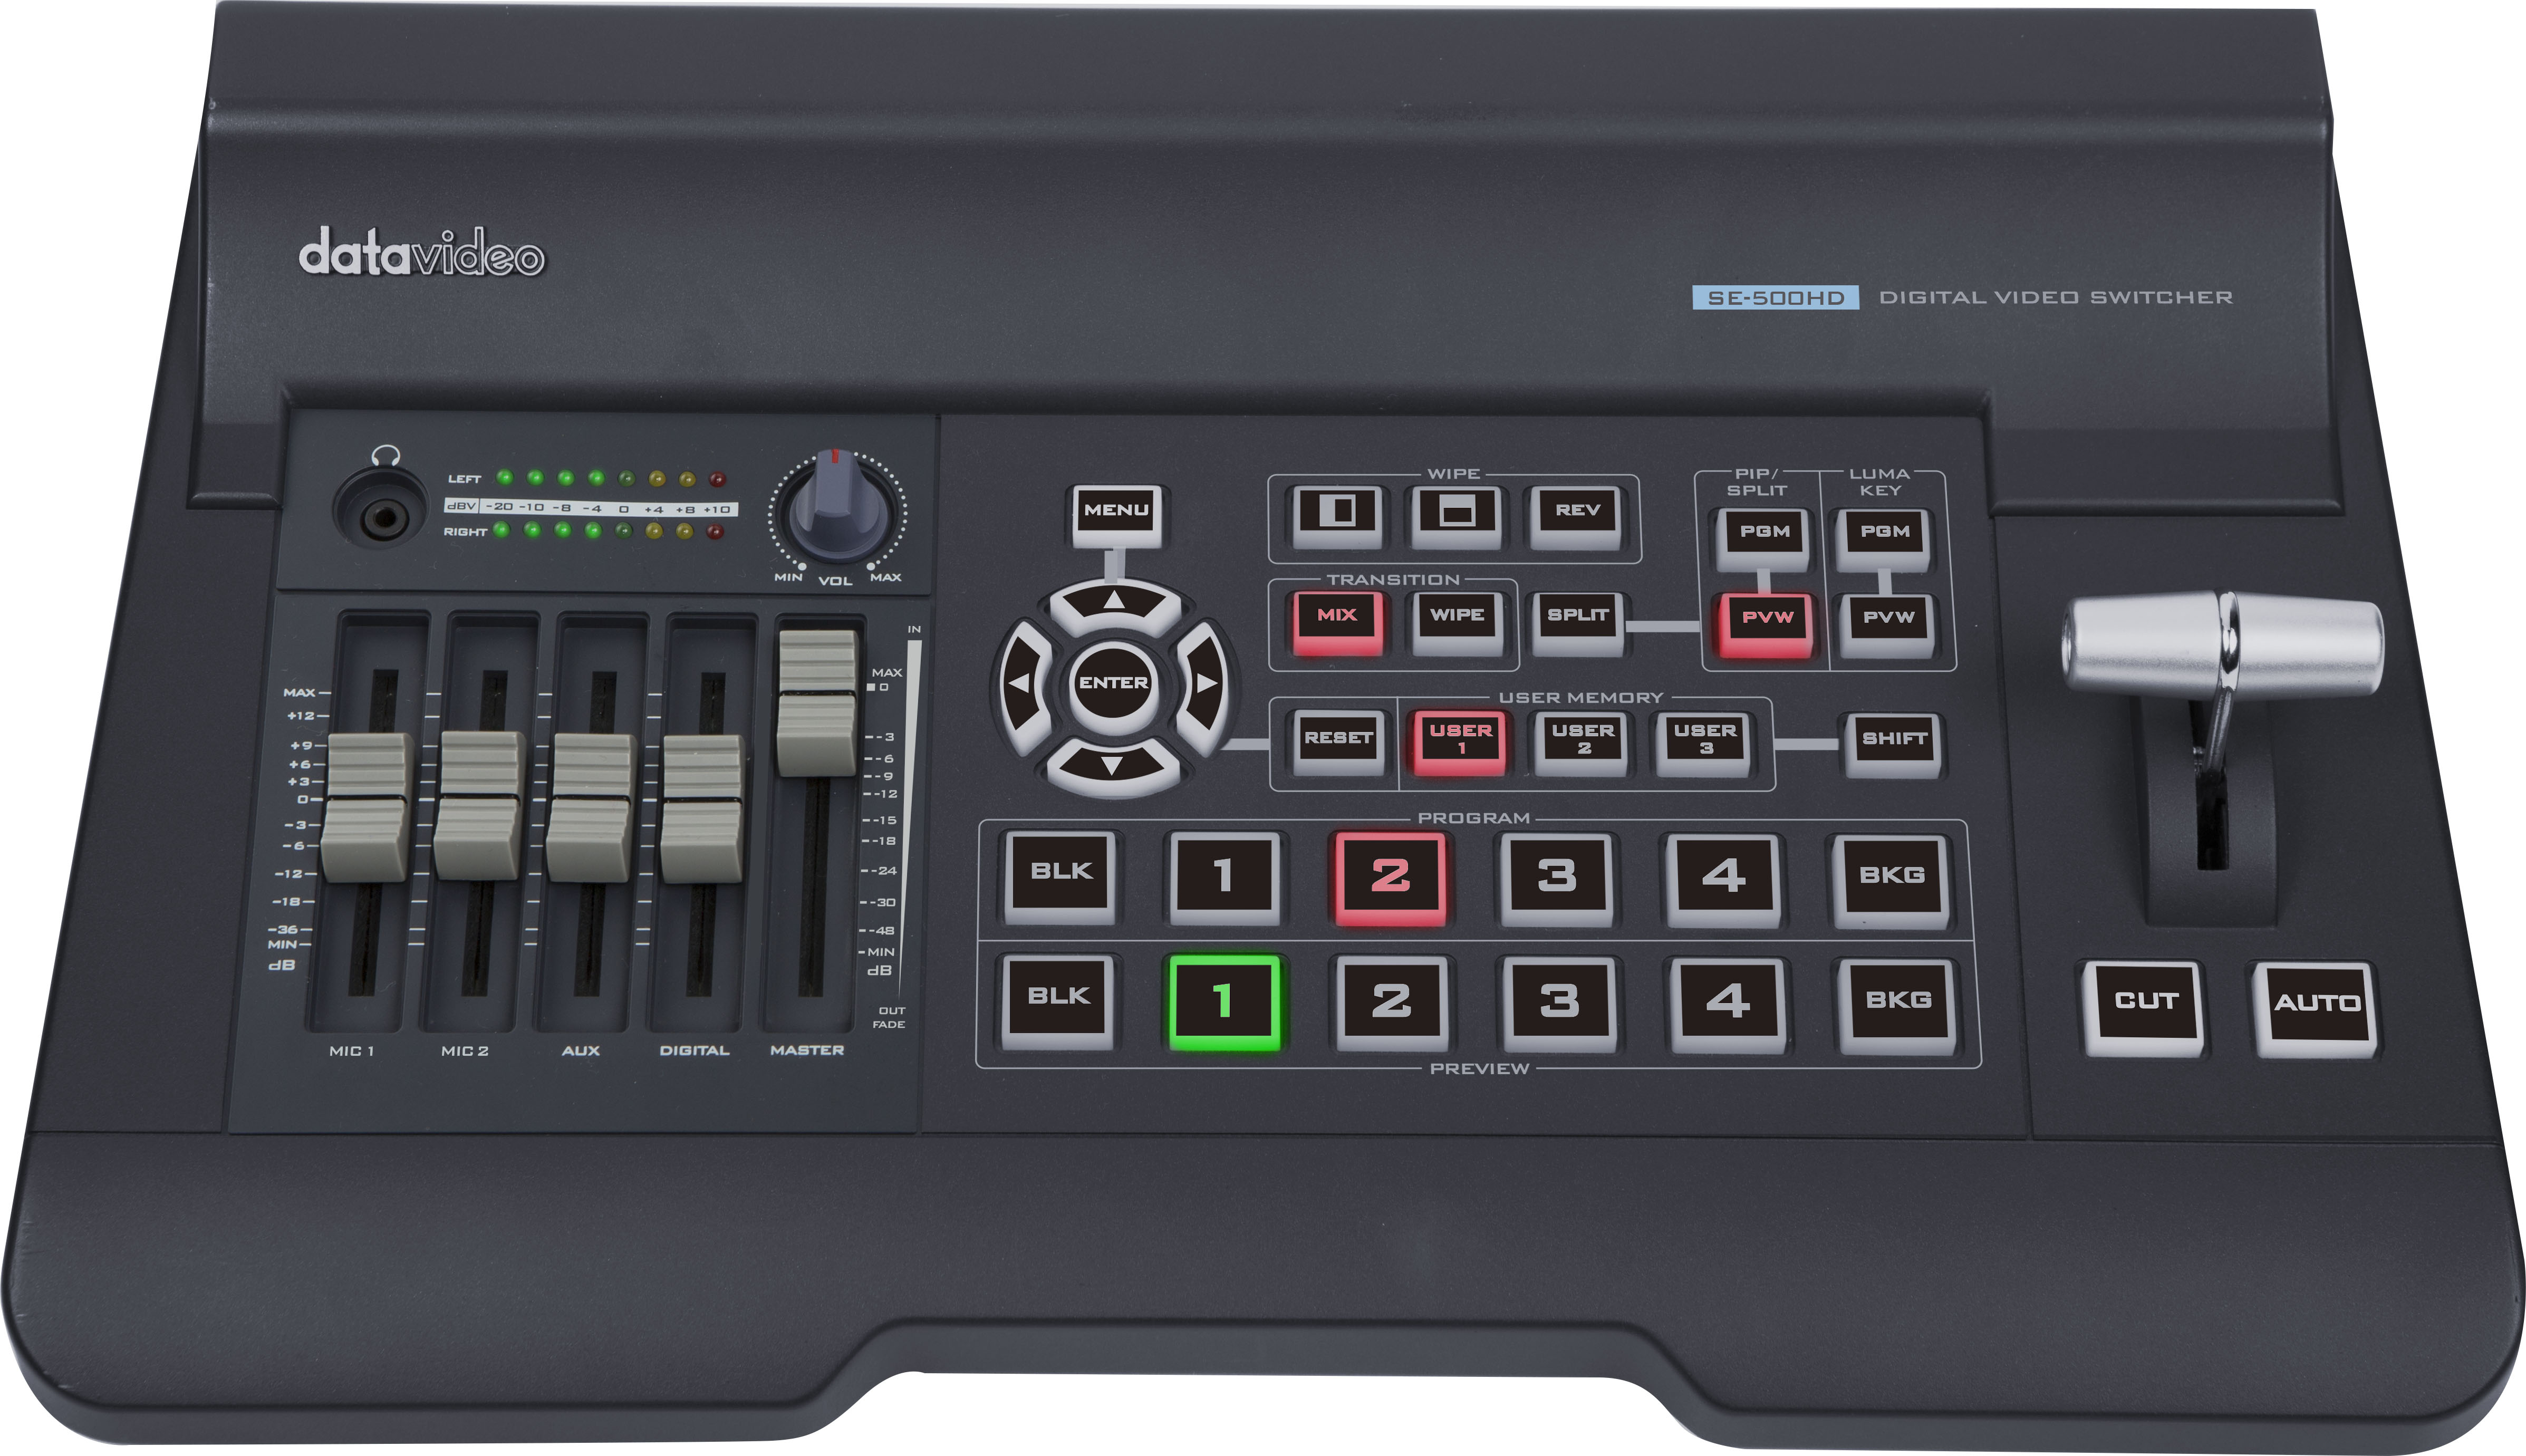 Powerful compact switcher